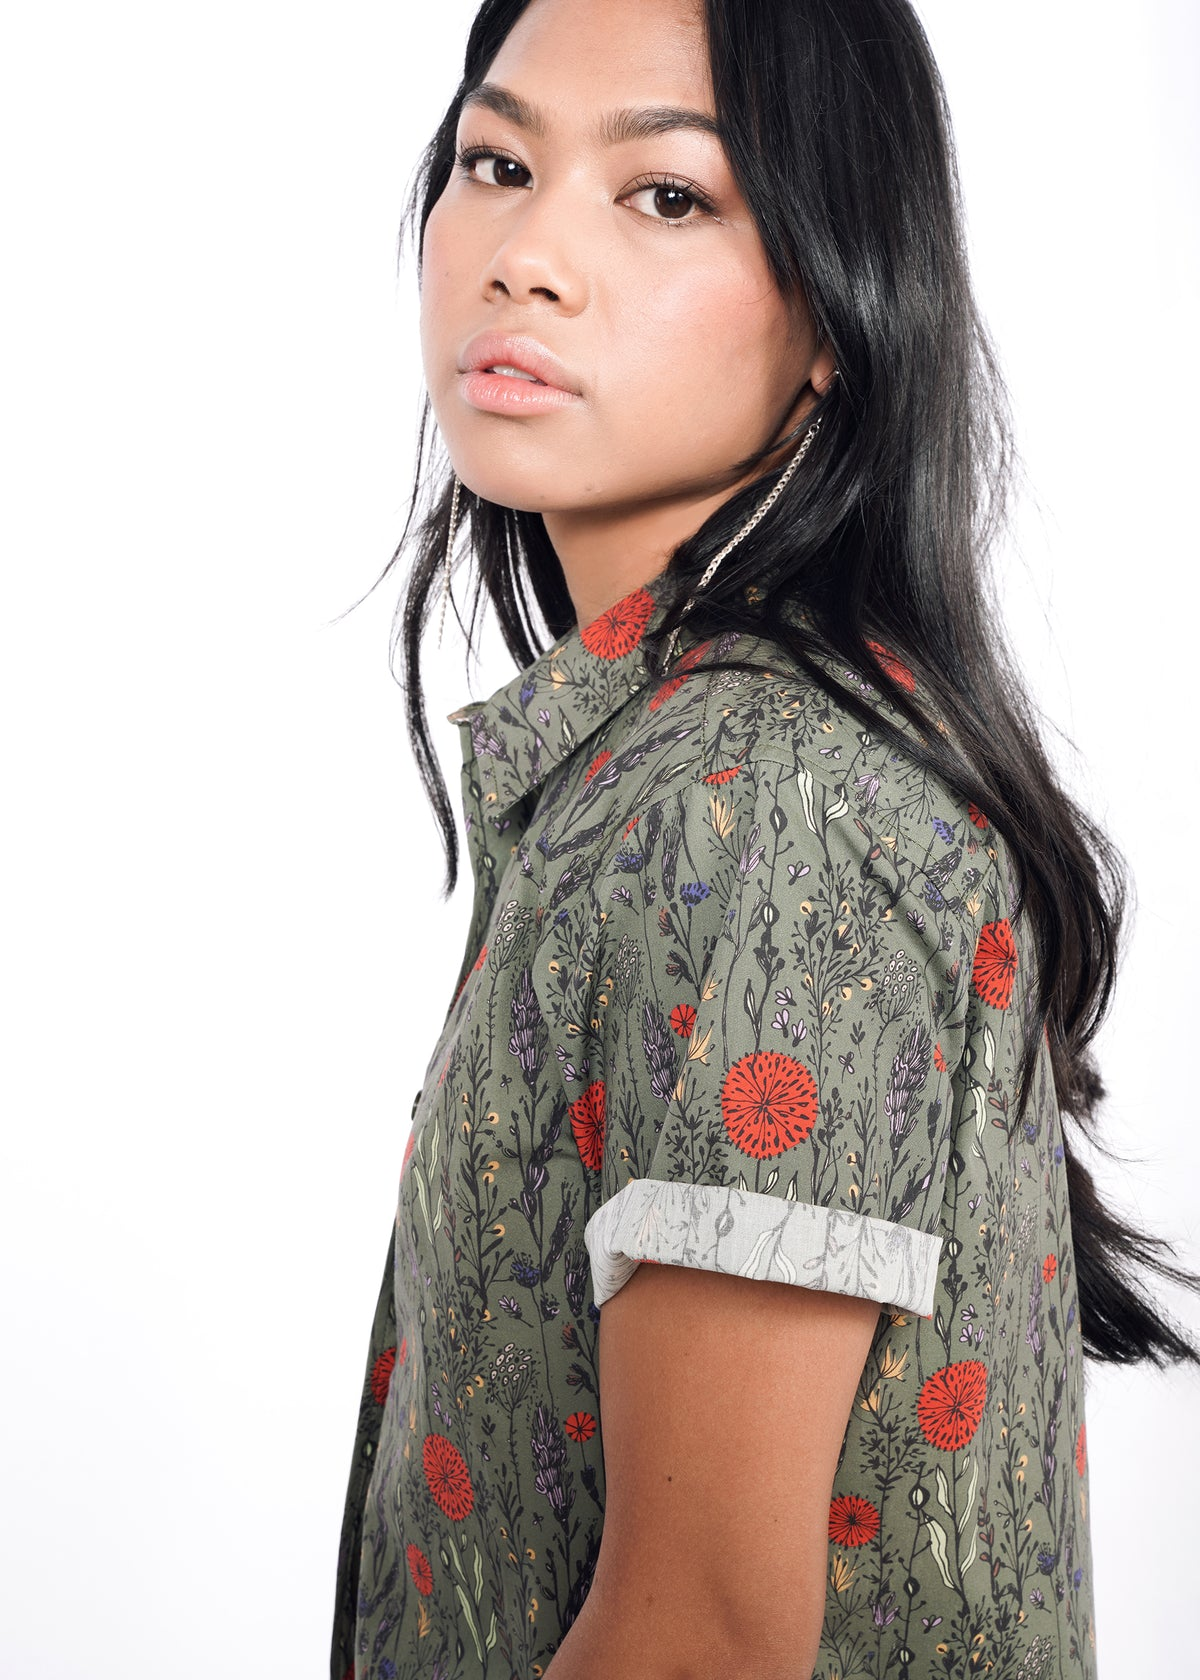 Model wearing botanical all over printed short sleeved button up shirt in size XS, with the sleeves cuffed